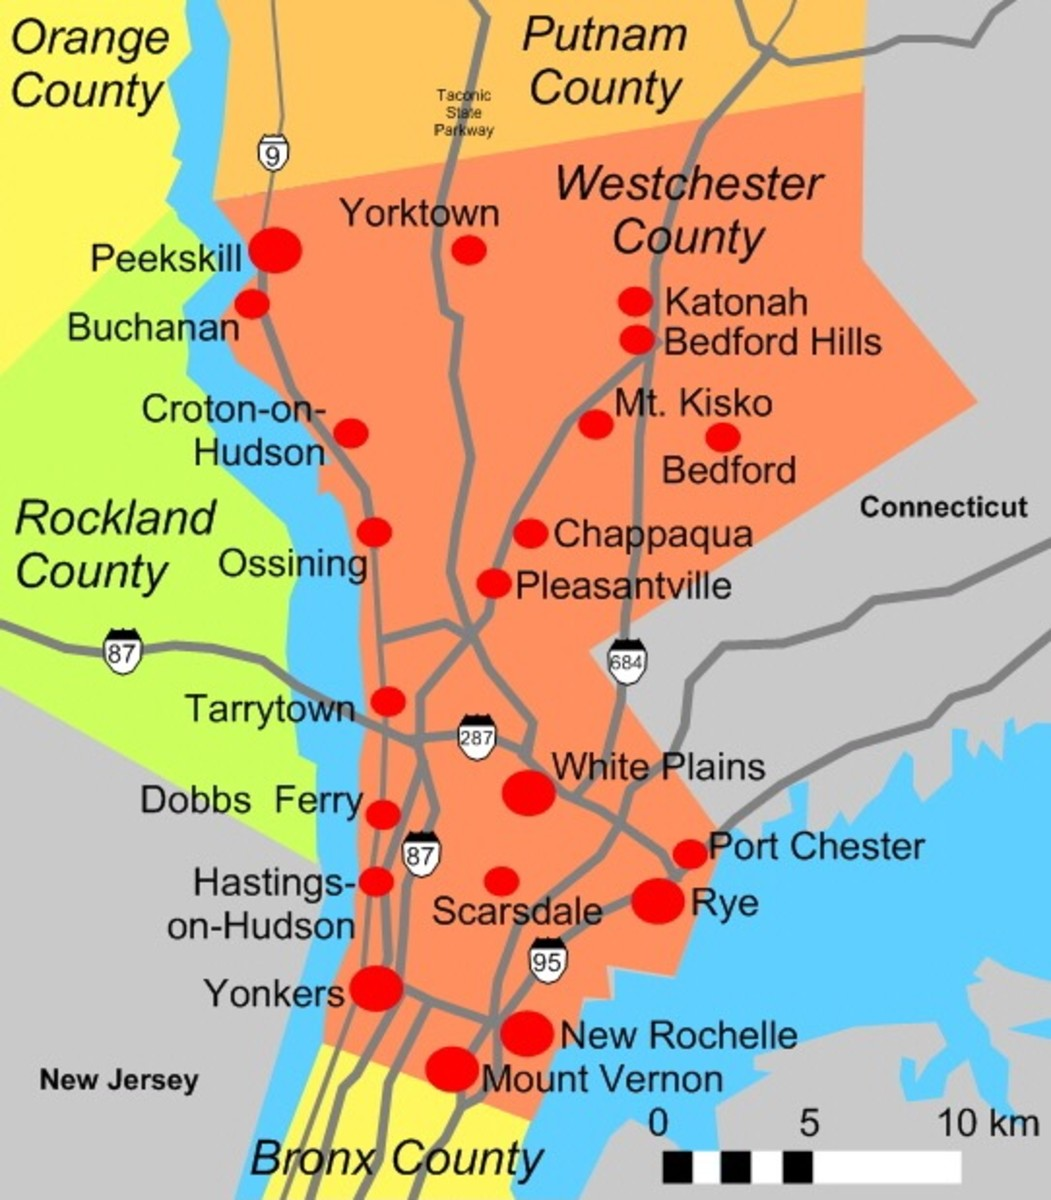 westchester_county